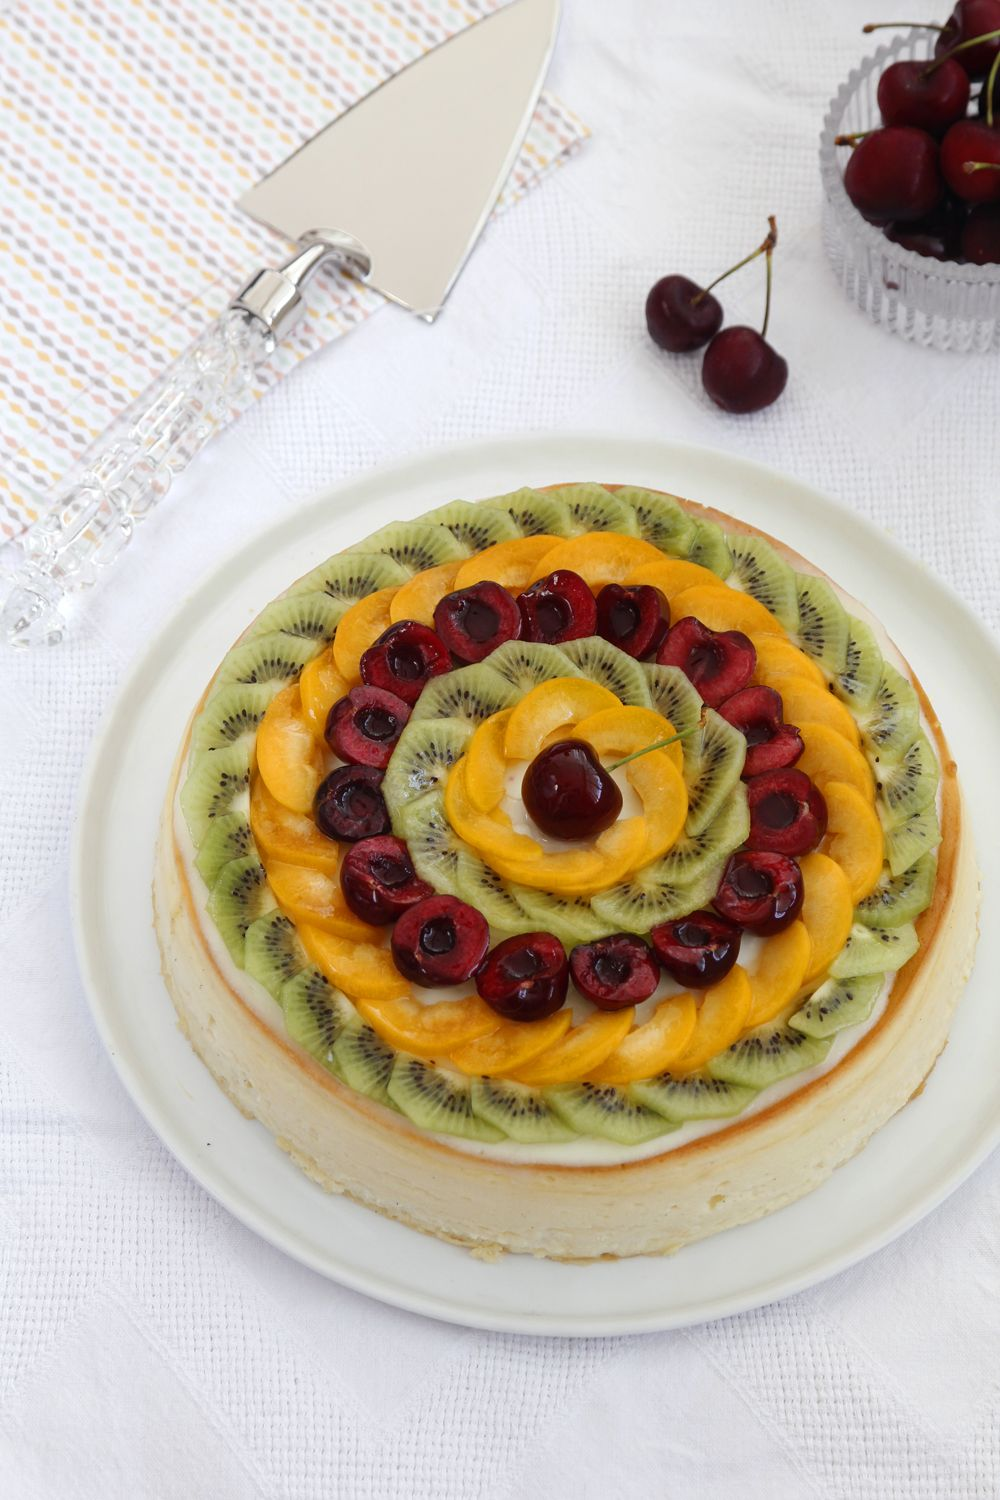 Gluten Free Cheesecake with Fruits